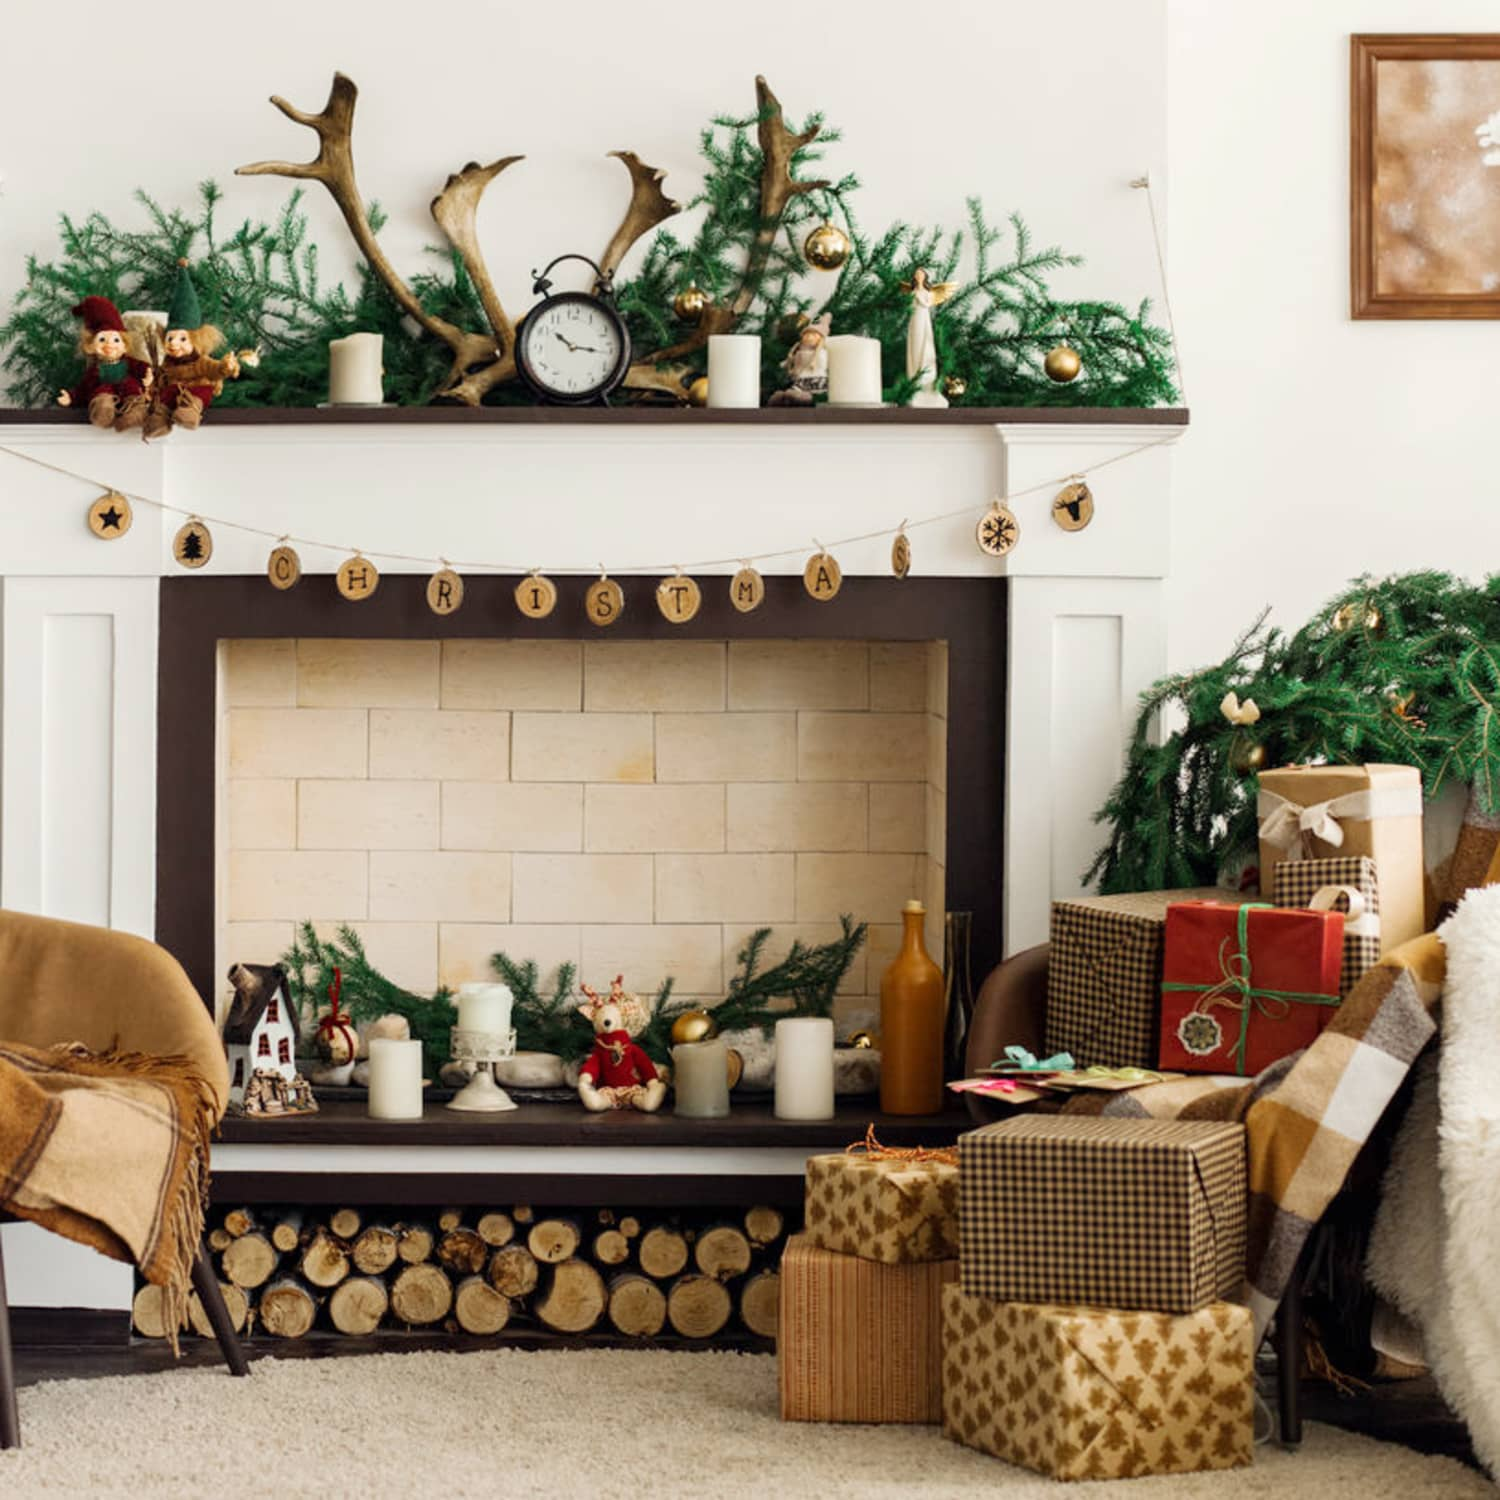 Pottery Barn Holiday Collection Is Here and It's Magical